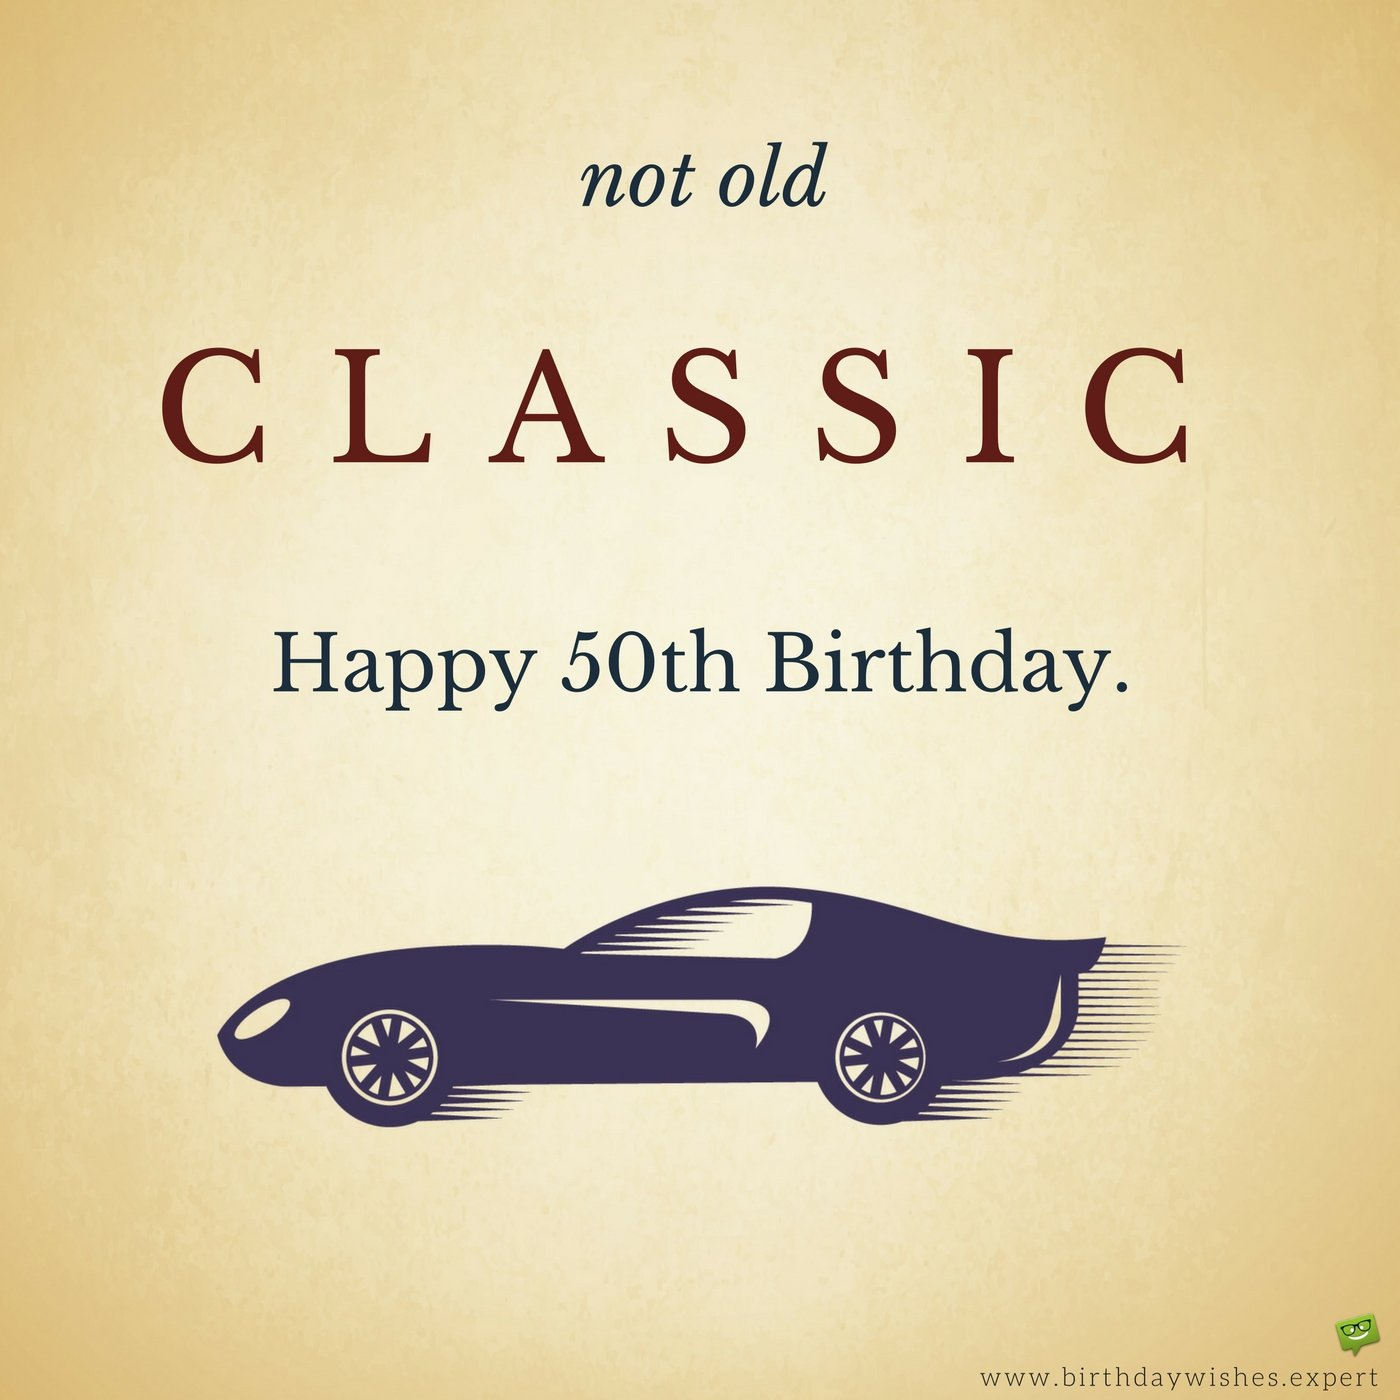 Funny 50th Birthday Wishes Quotes: Funny & Sweet Birthday Wishes